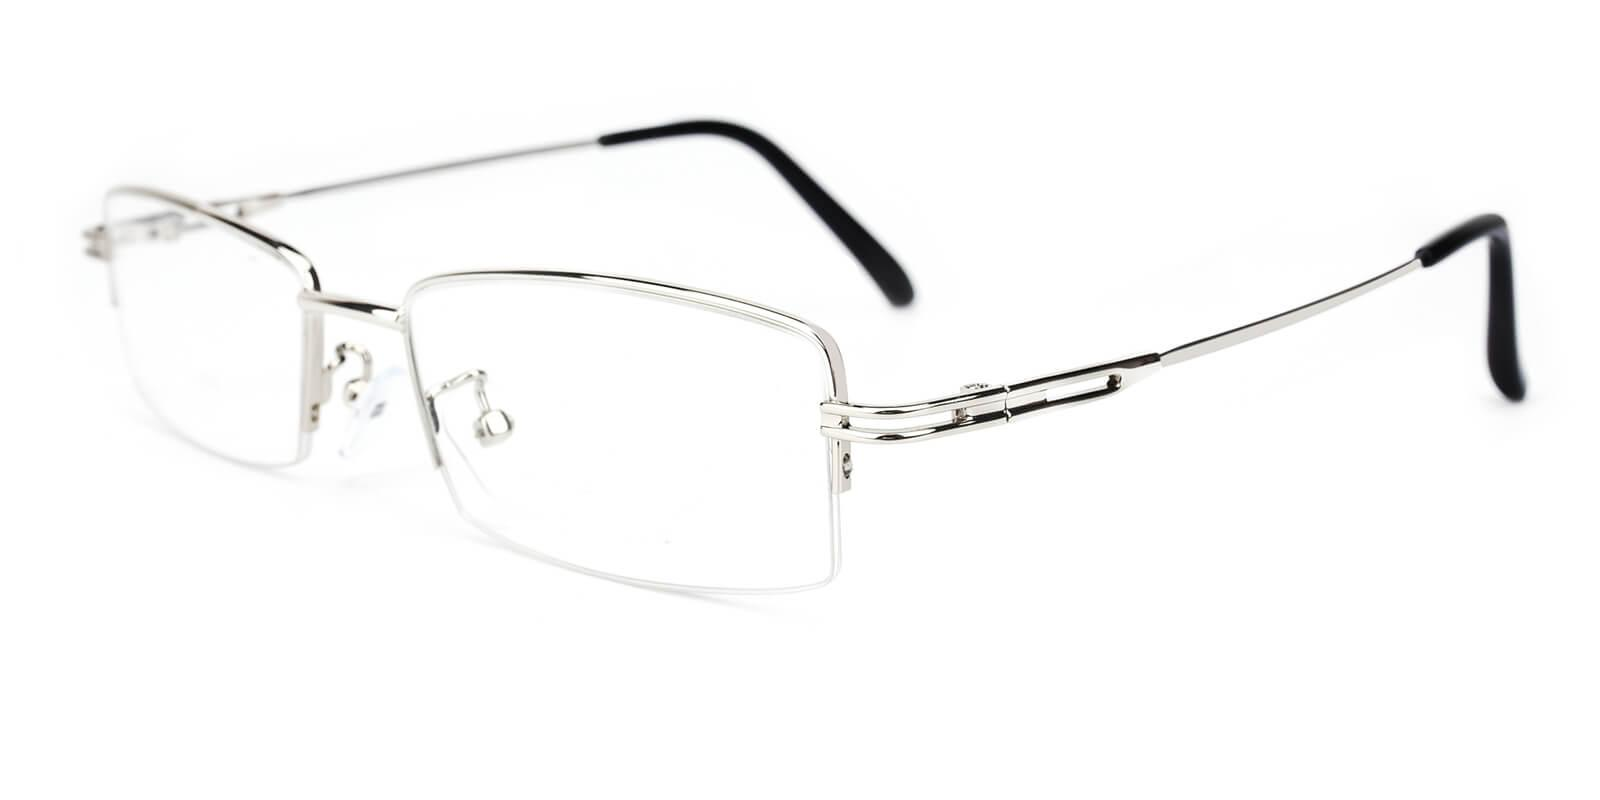 Studio-Silver-Rectangle-Metal-Eyeglasses-additional1